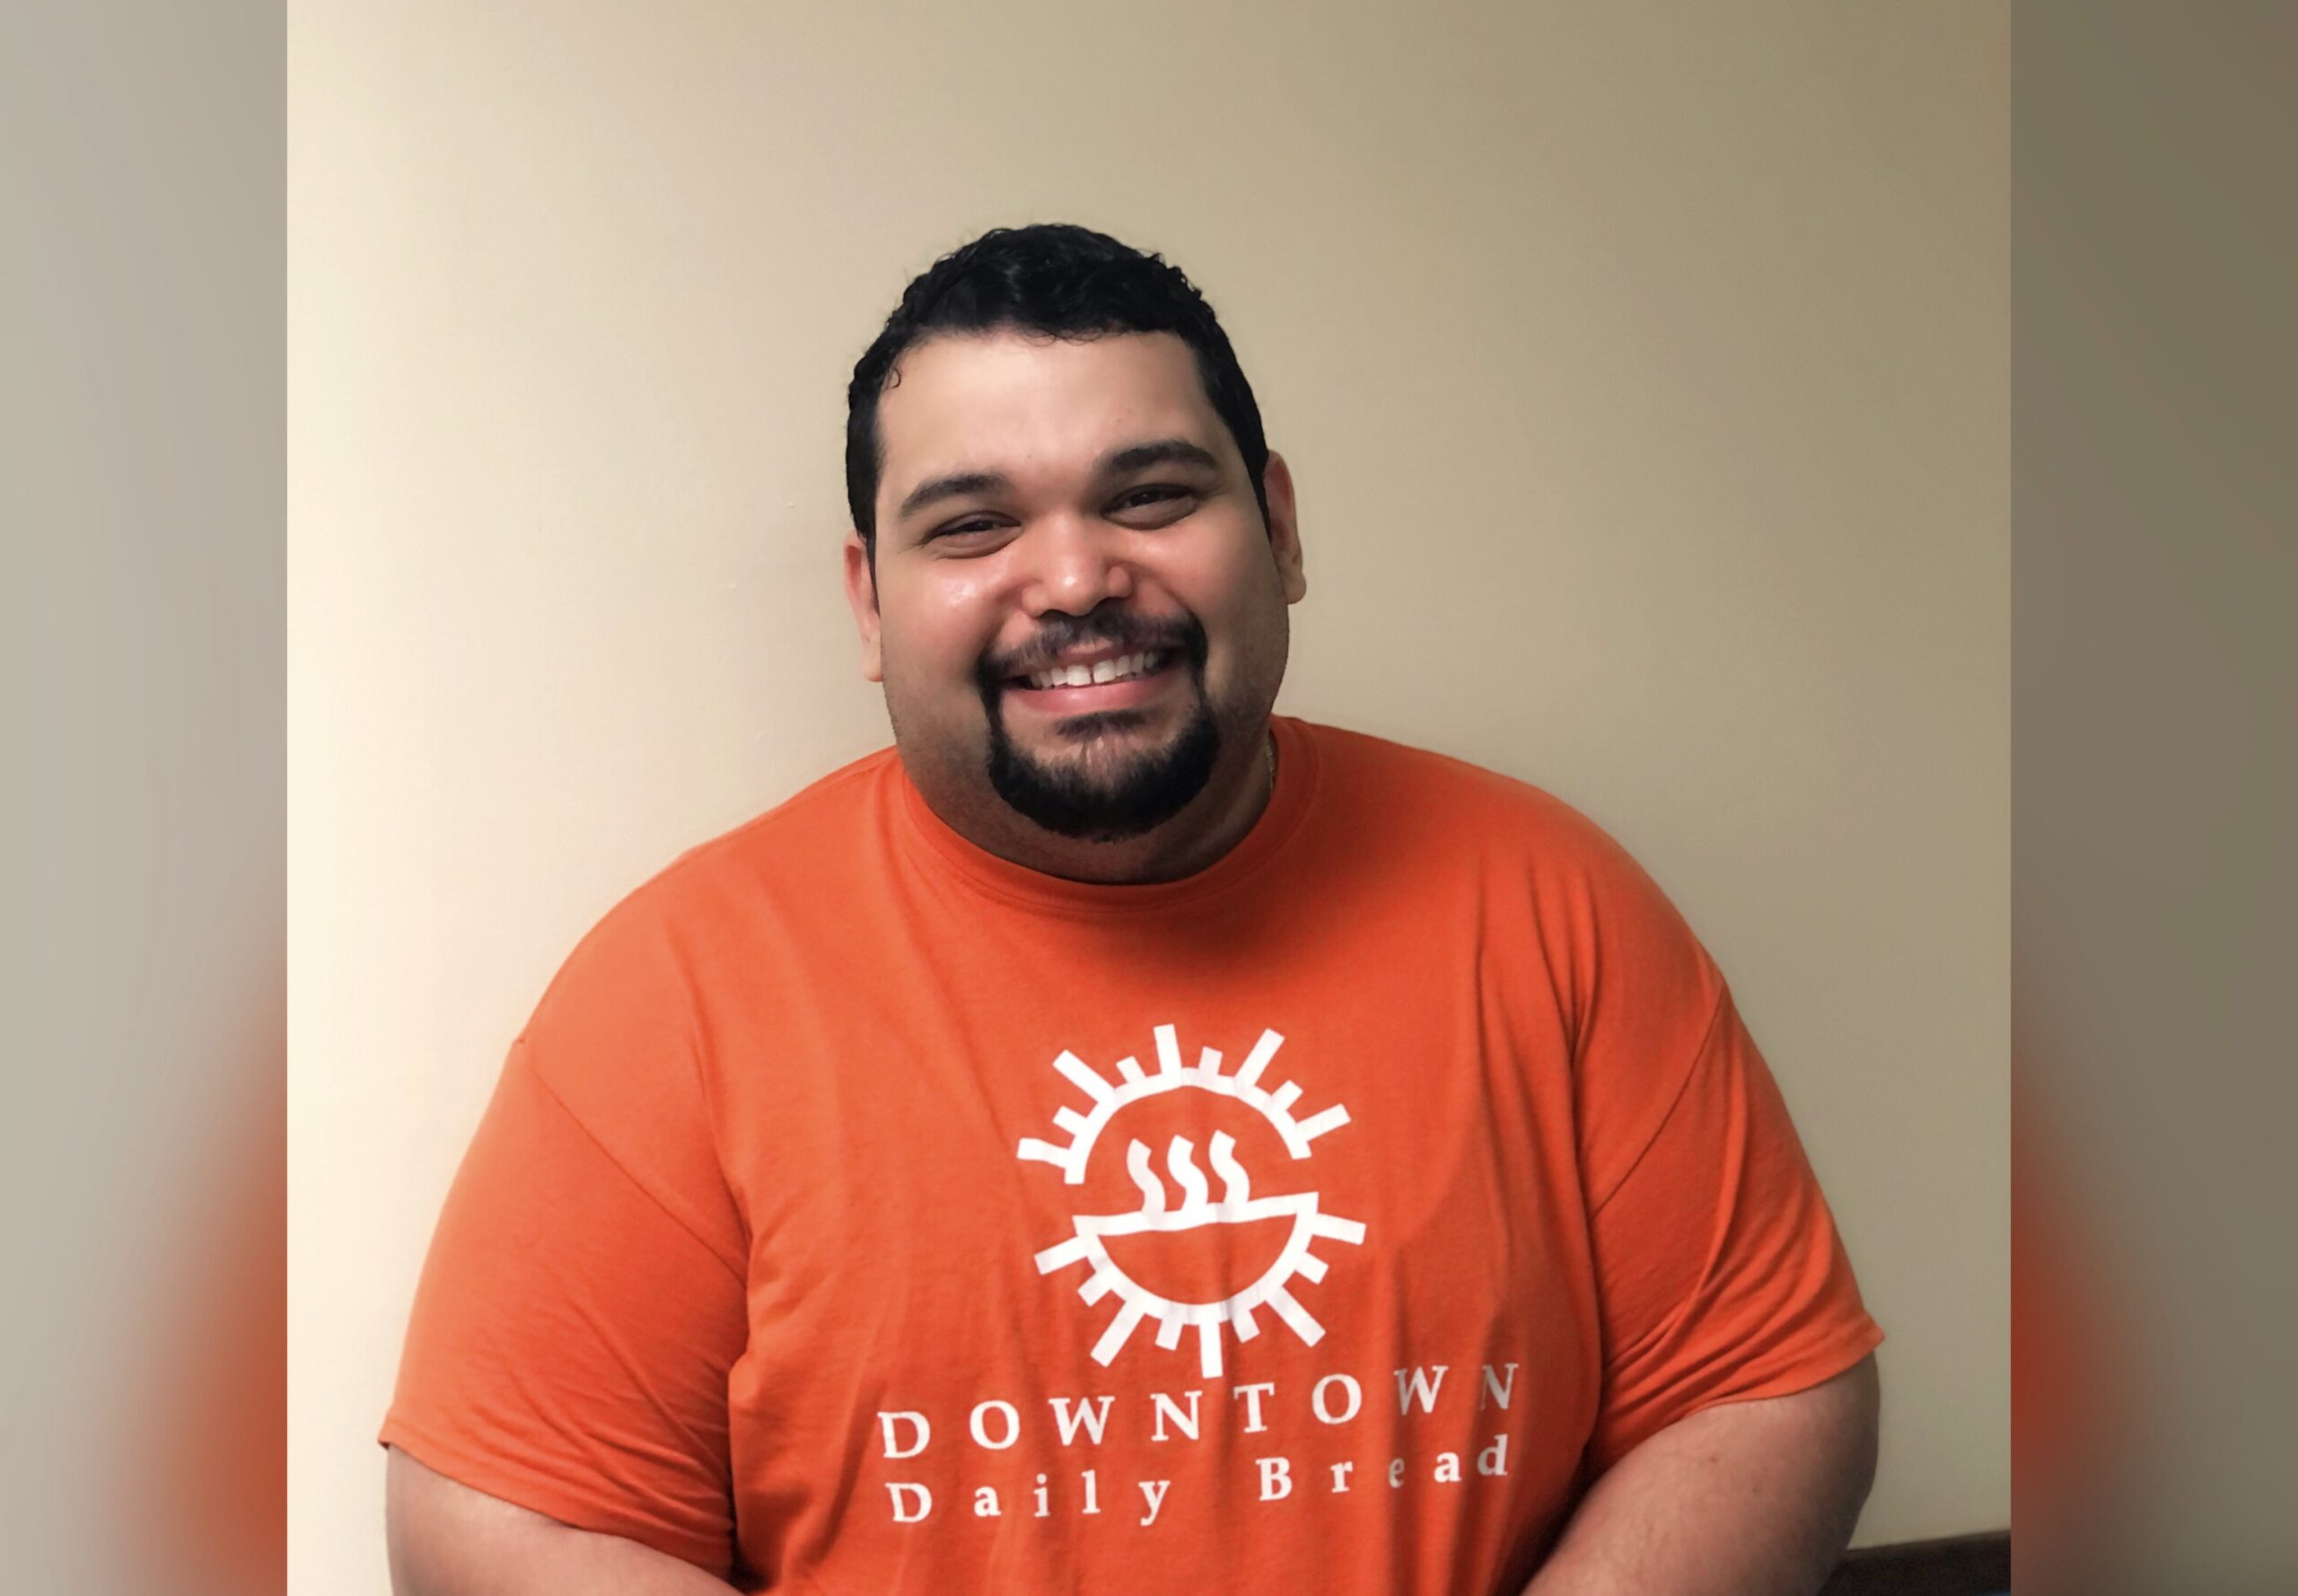 Matthew Sposito - Downtown Daily Bread Client Assistant